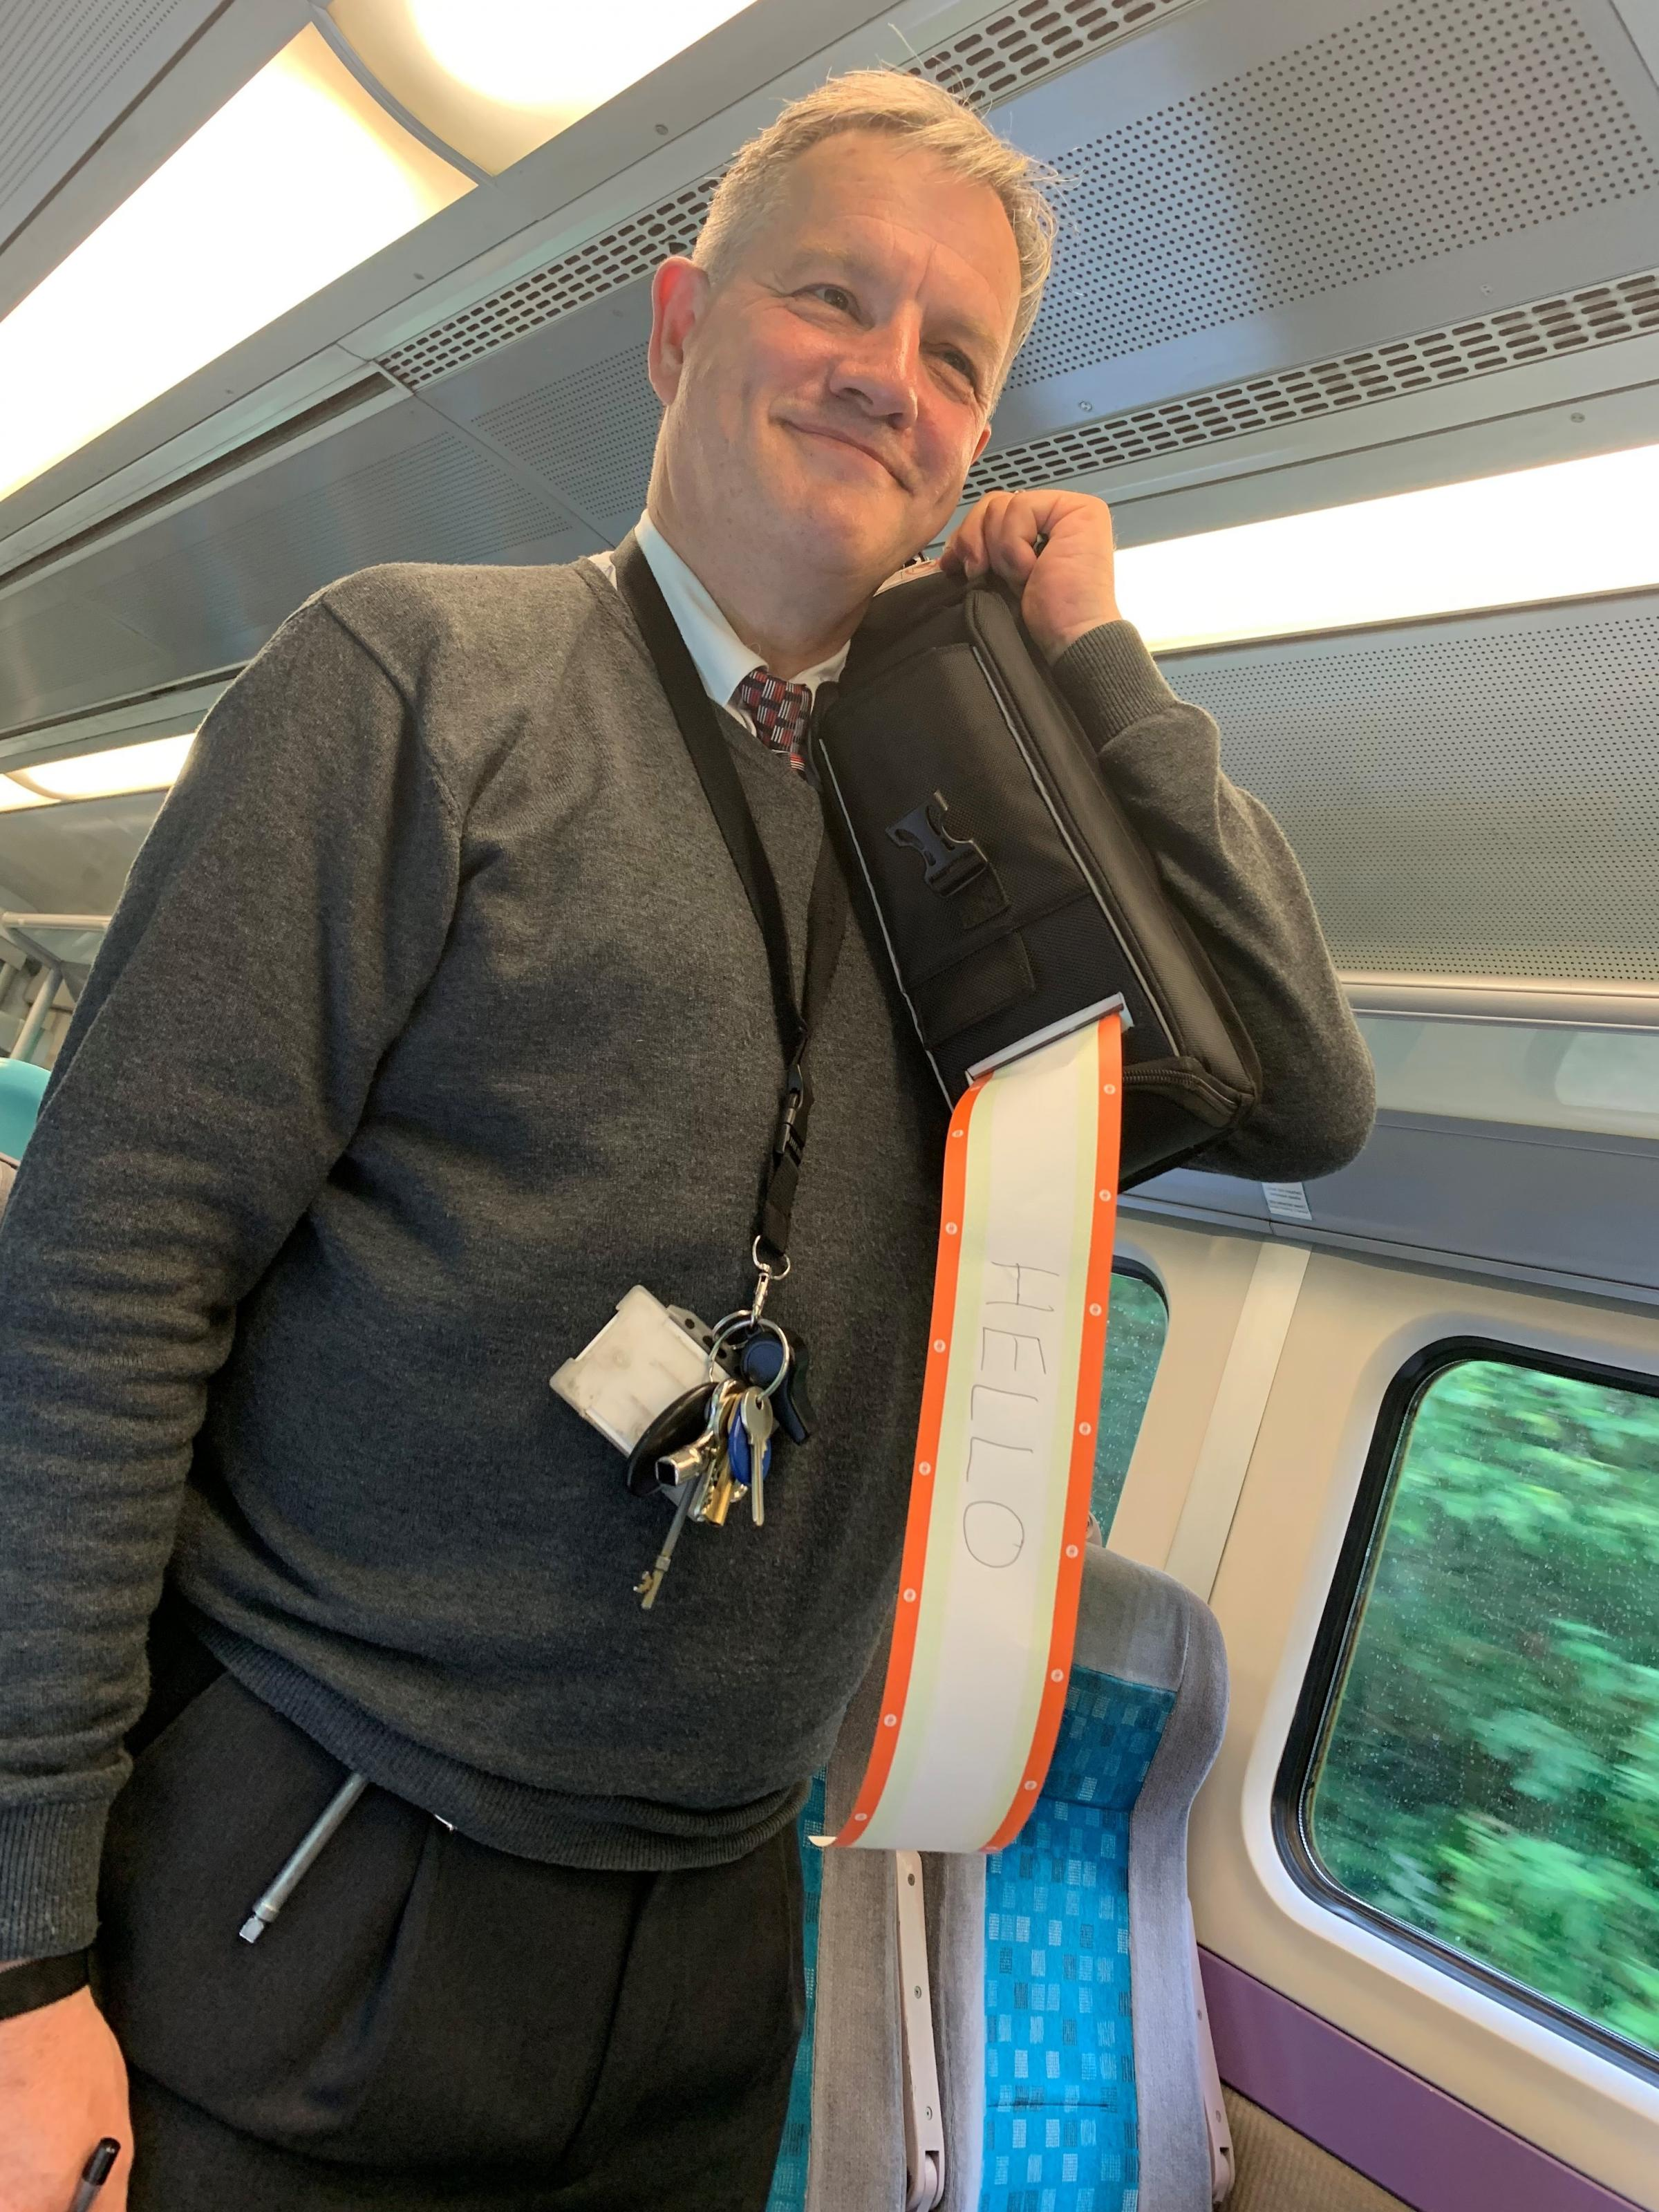 Newport train conductor who sings to his passengers